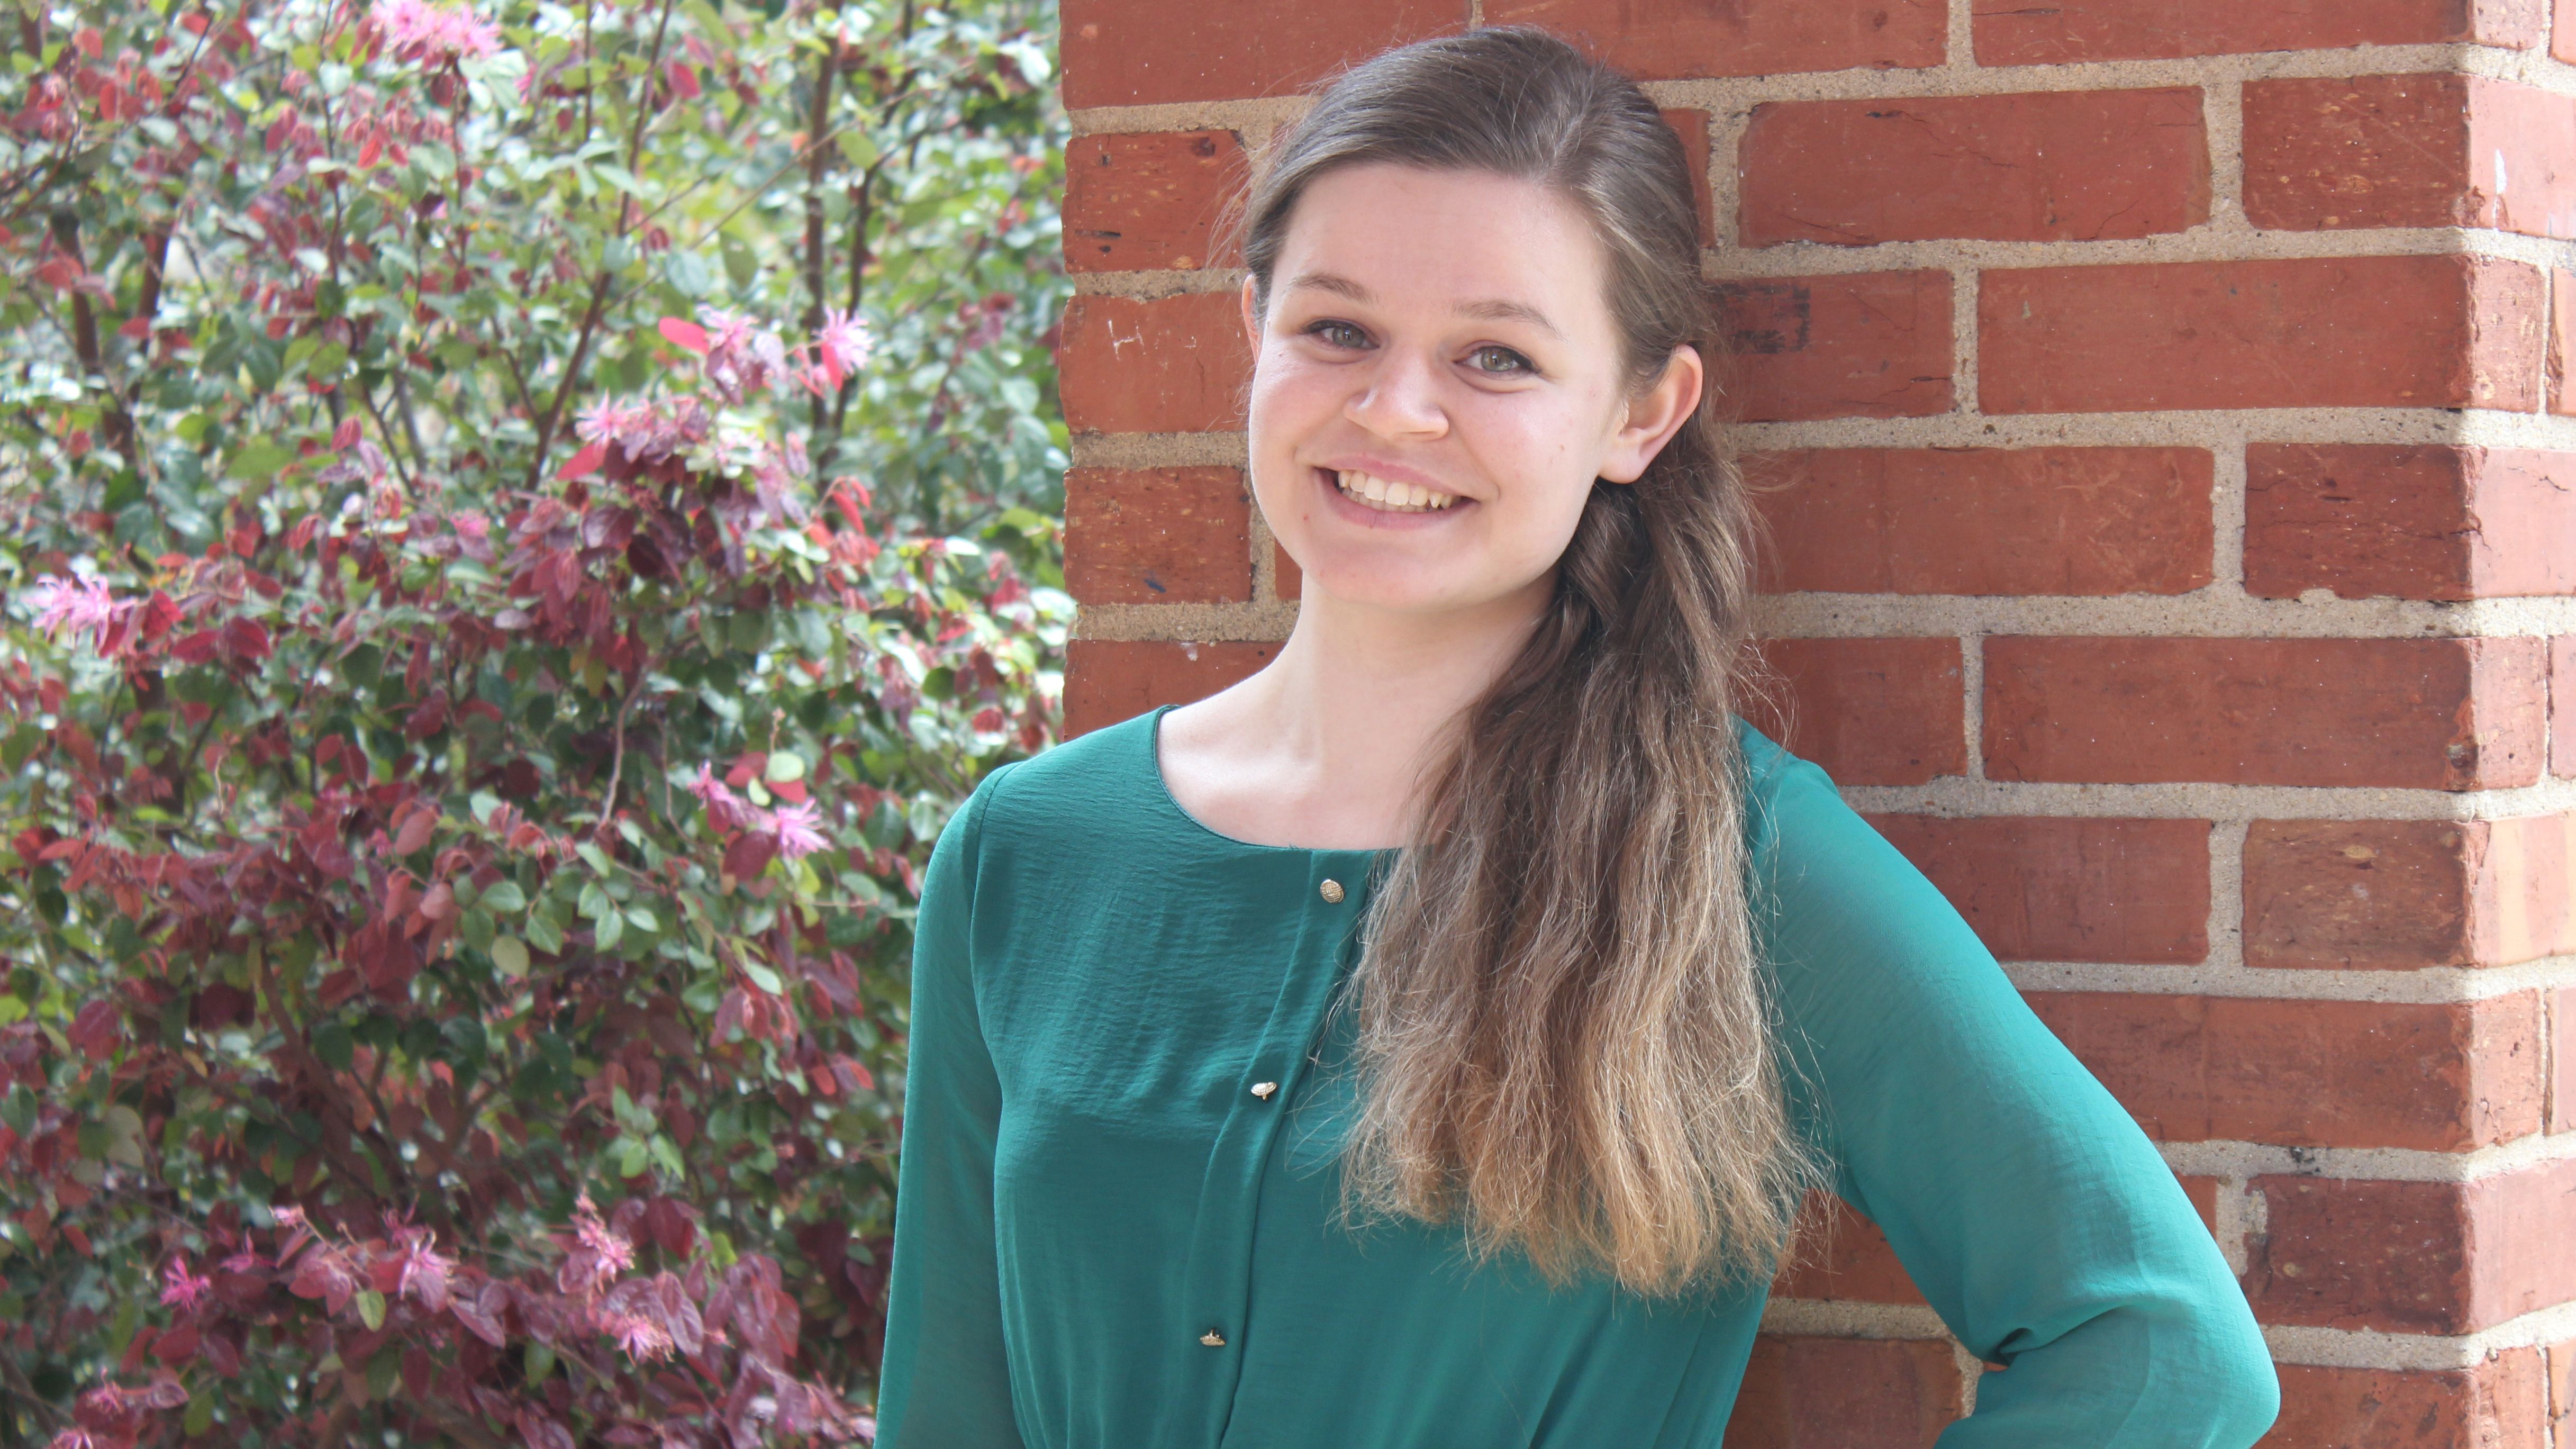 Meredith Bain, NC State Udall Scholar